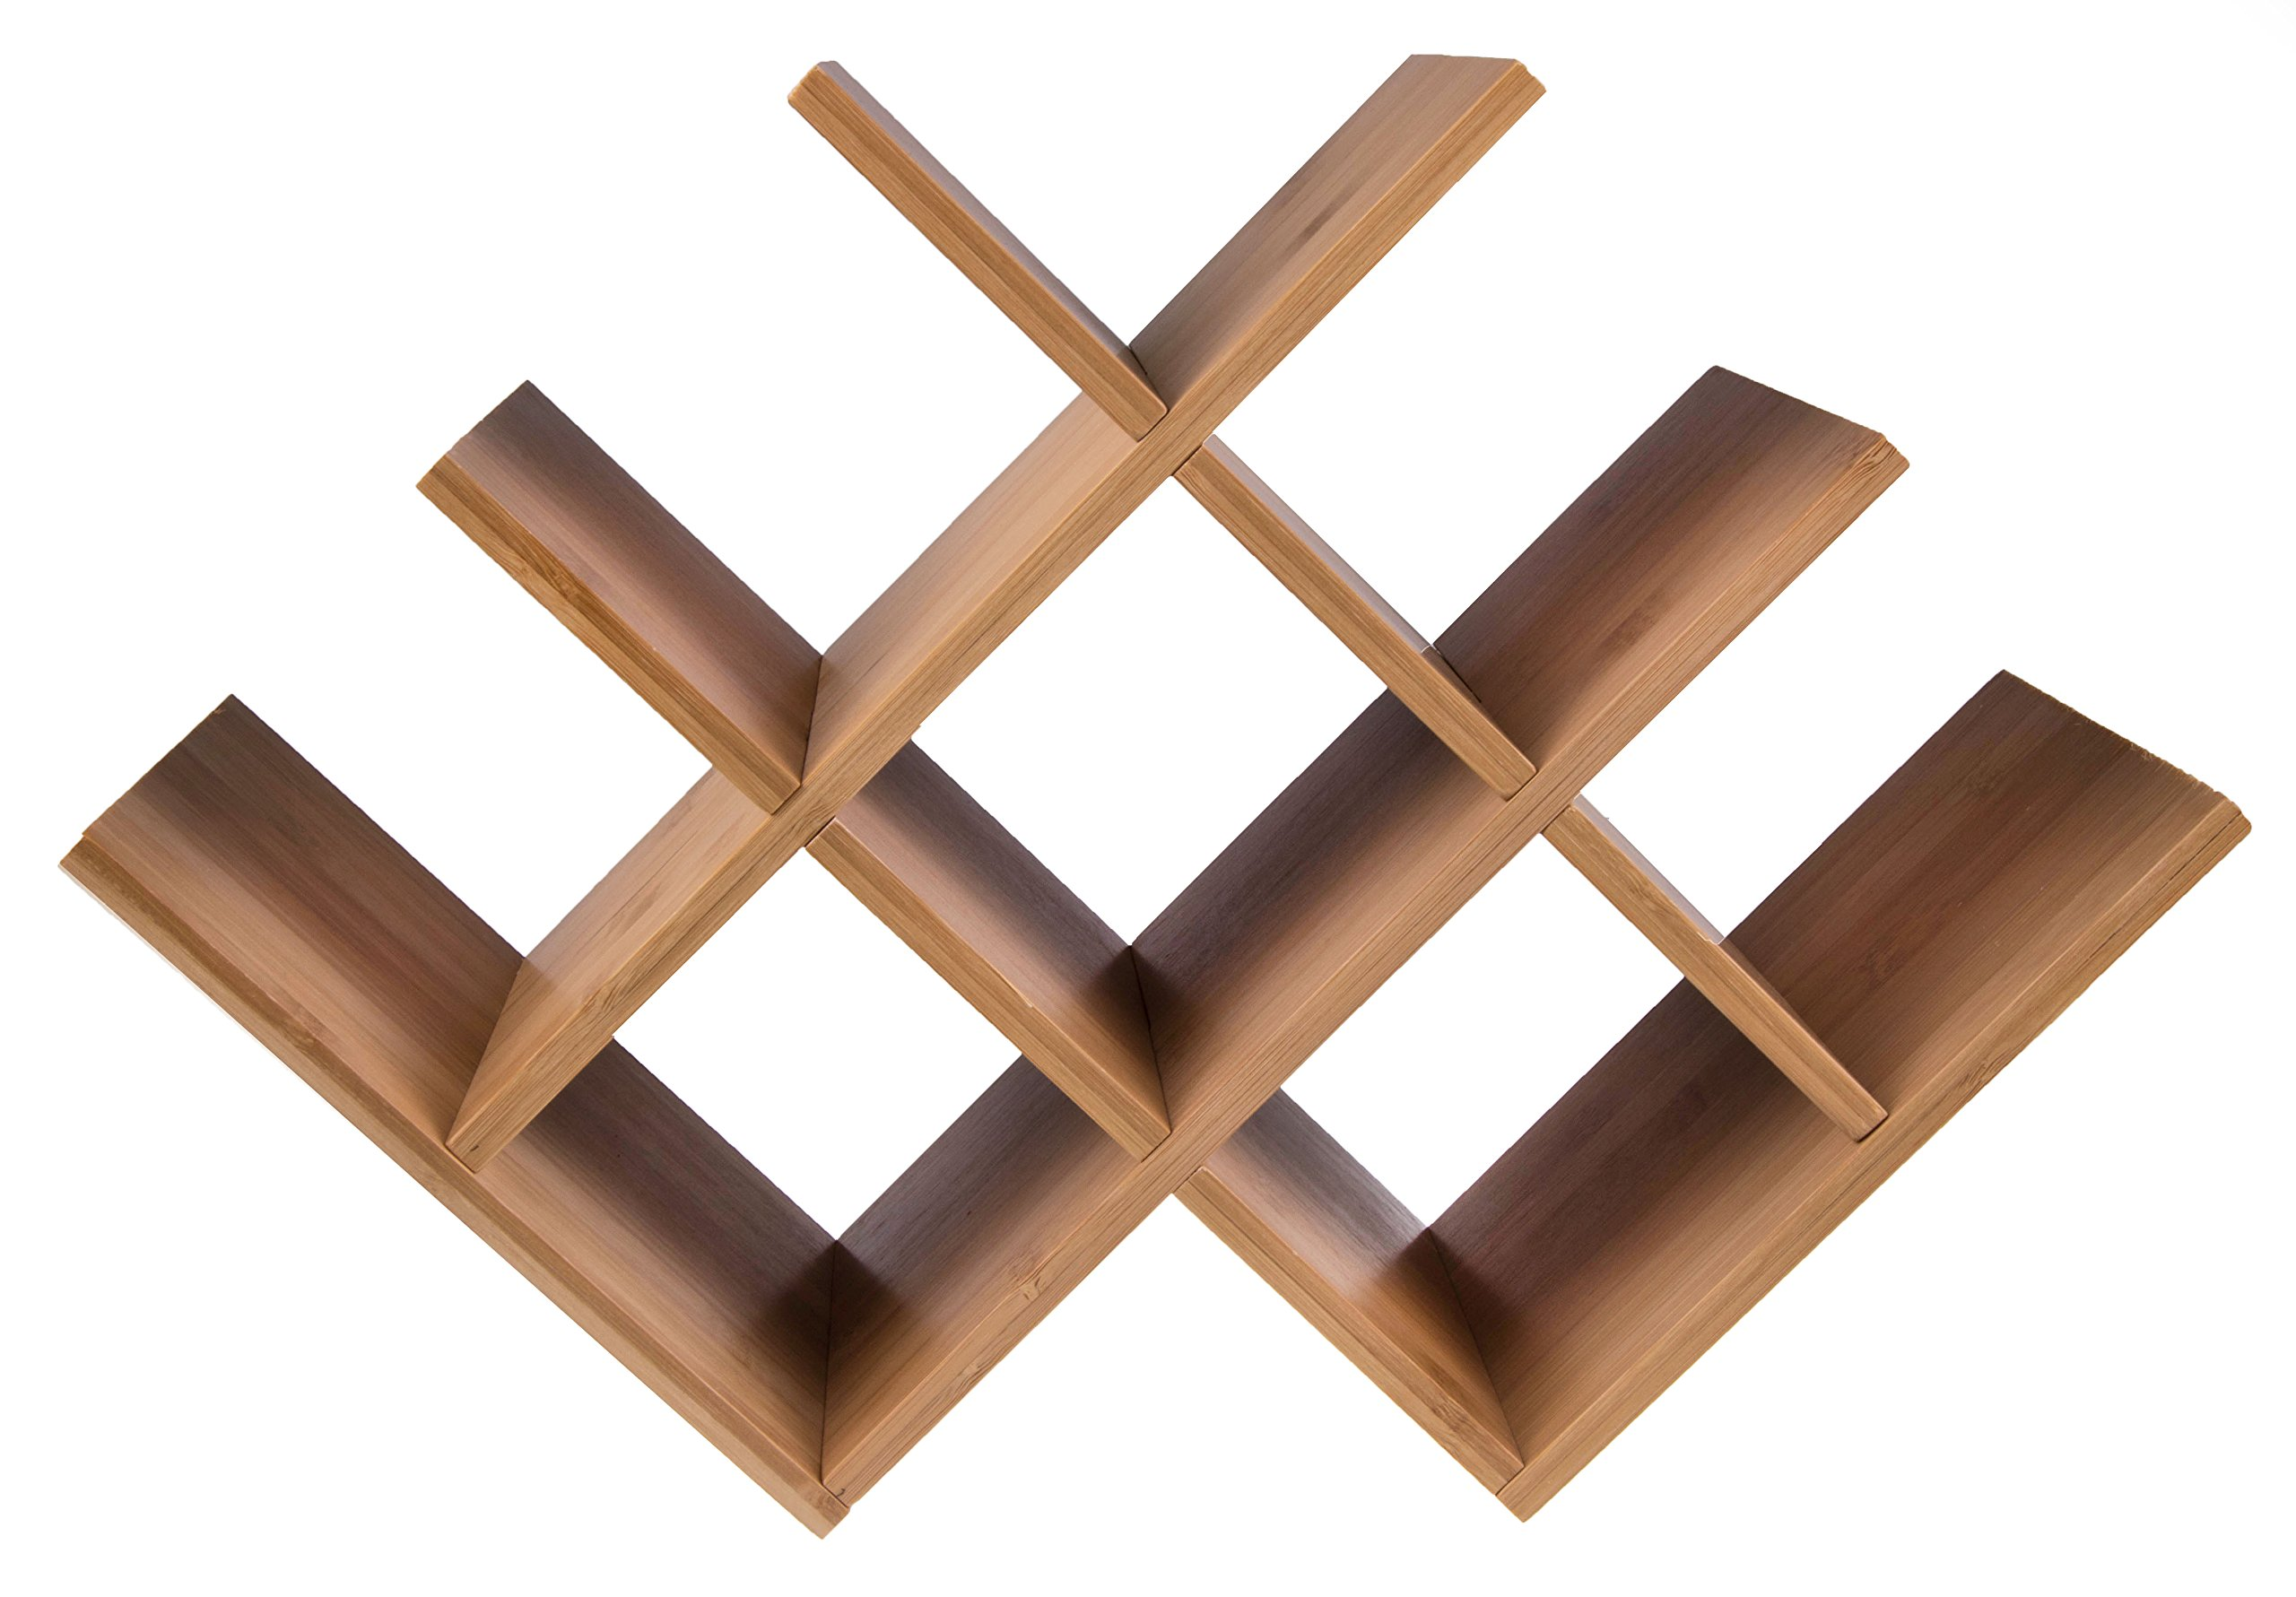 Premium Free Standing W Shaped Wine Rack by Clever Chef | Made of Bamboo | Sturdy & Easy to Assemble | Holds 8 Bottles by Clever Chef